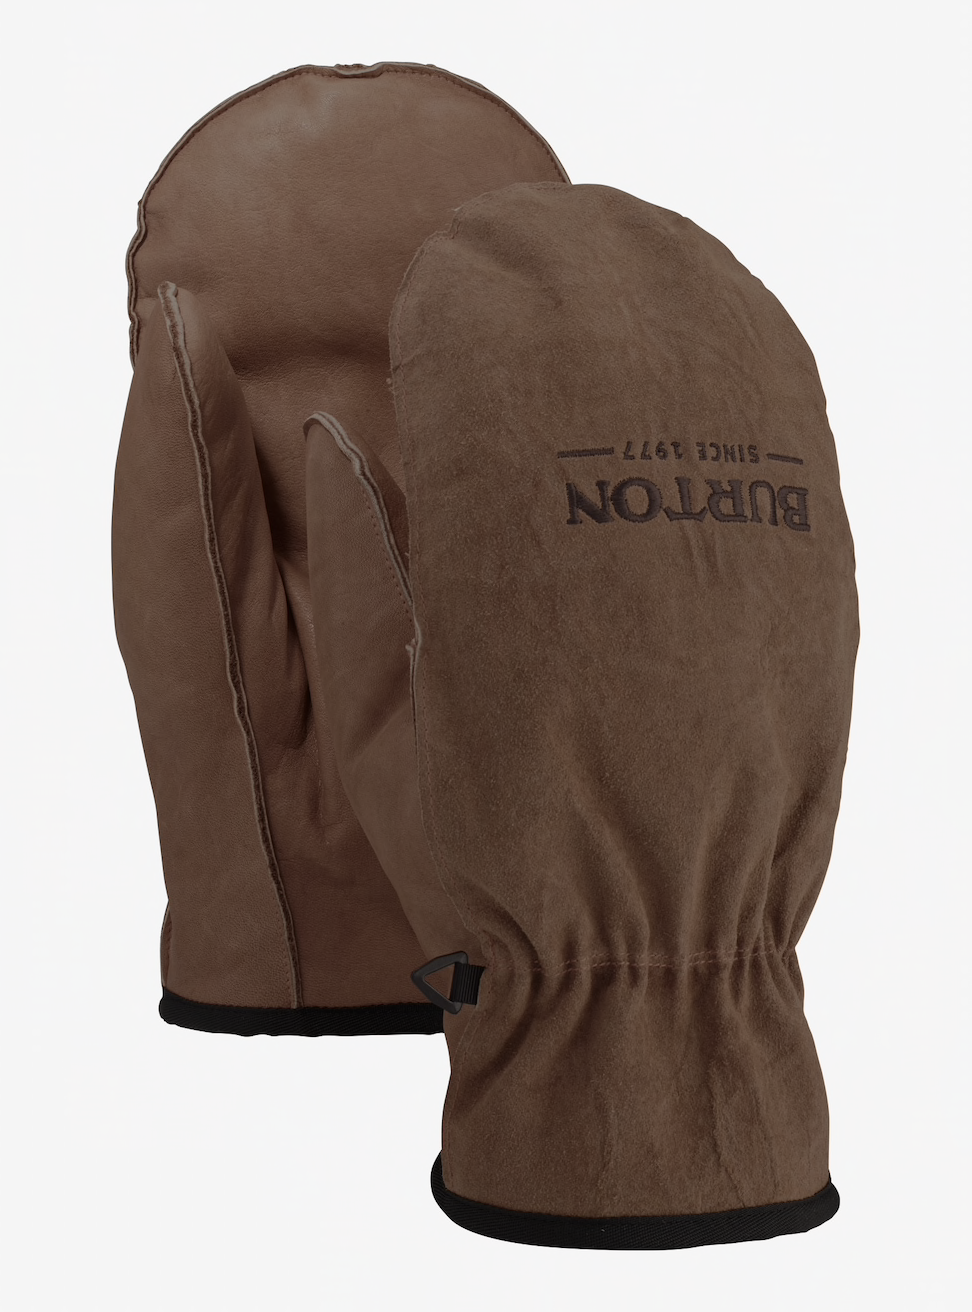 2019 Work Horse Leather Mitten - Brown Cow